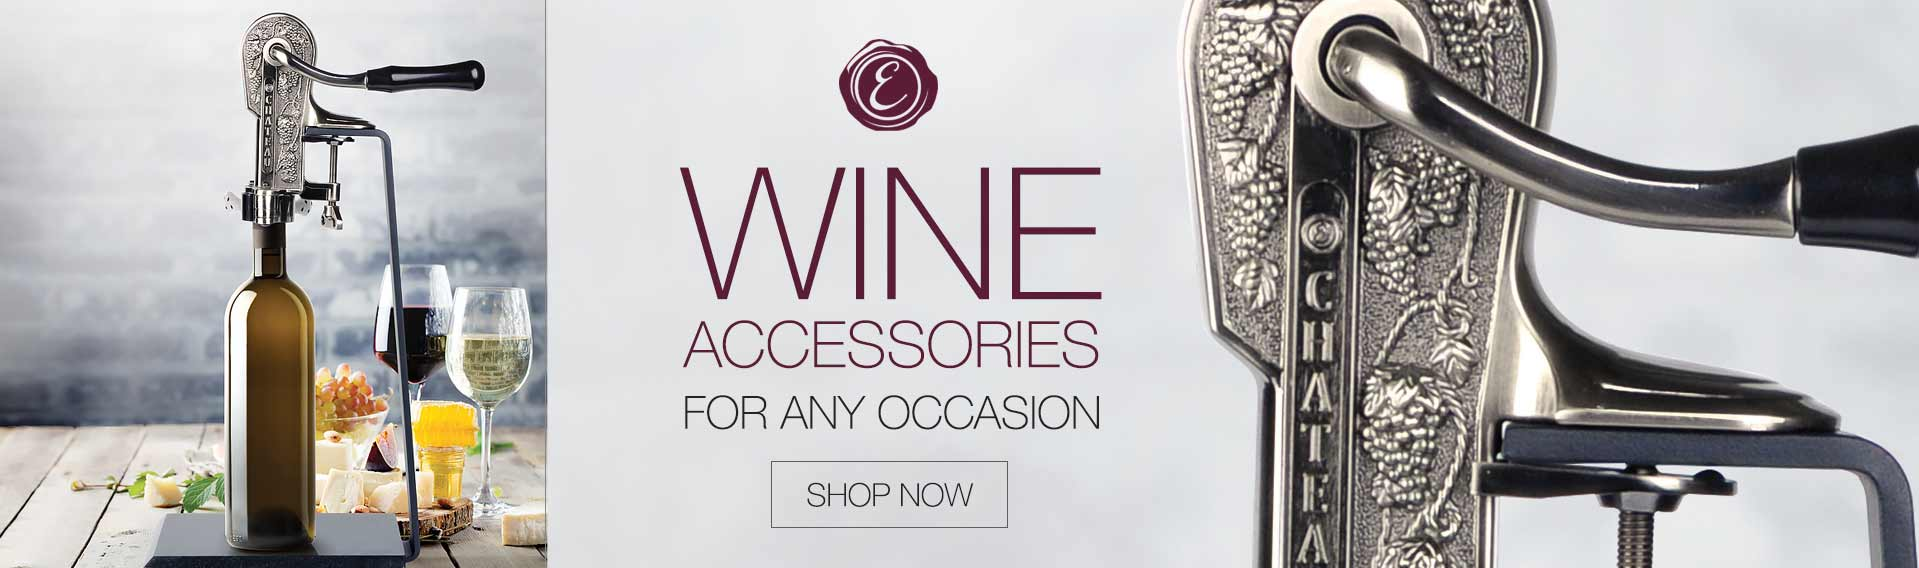 wine accessories for any occasion